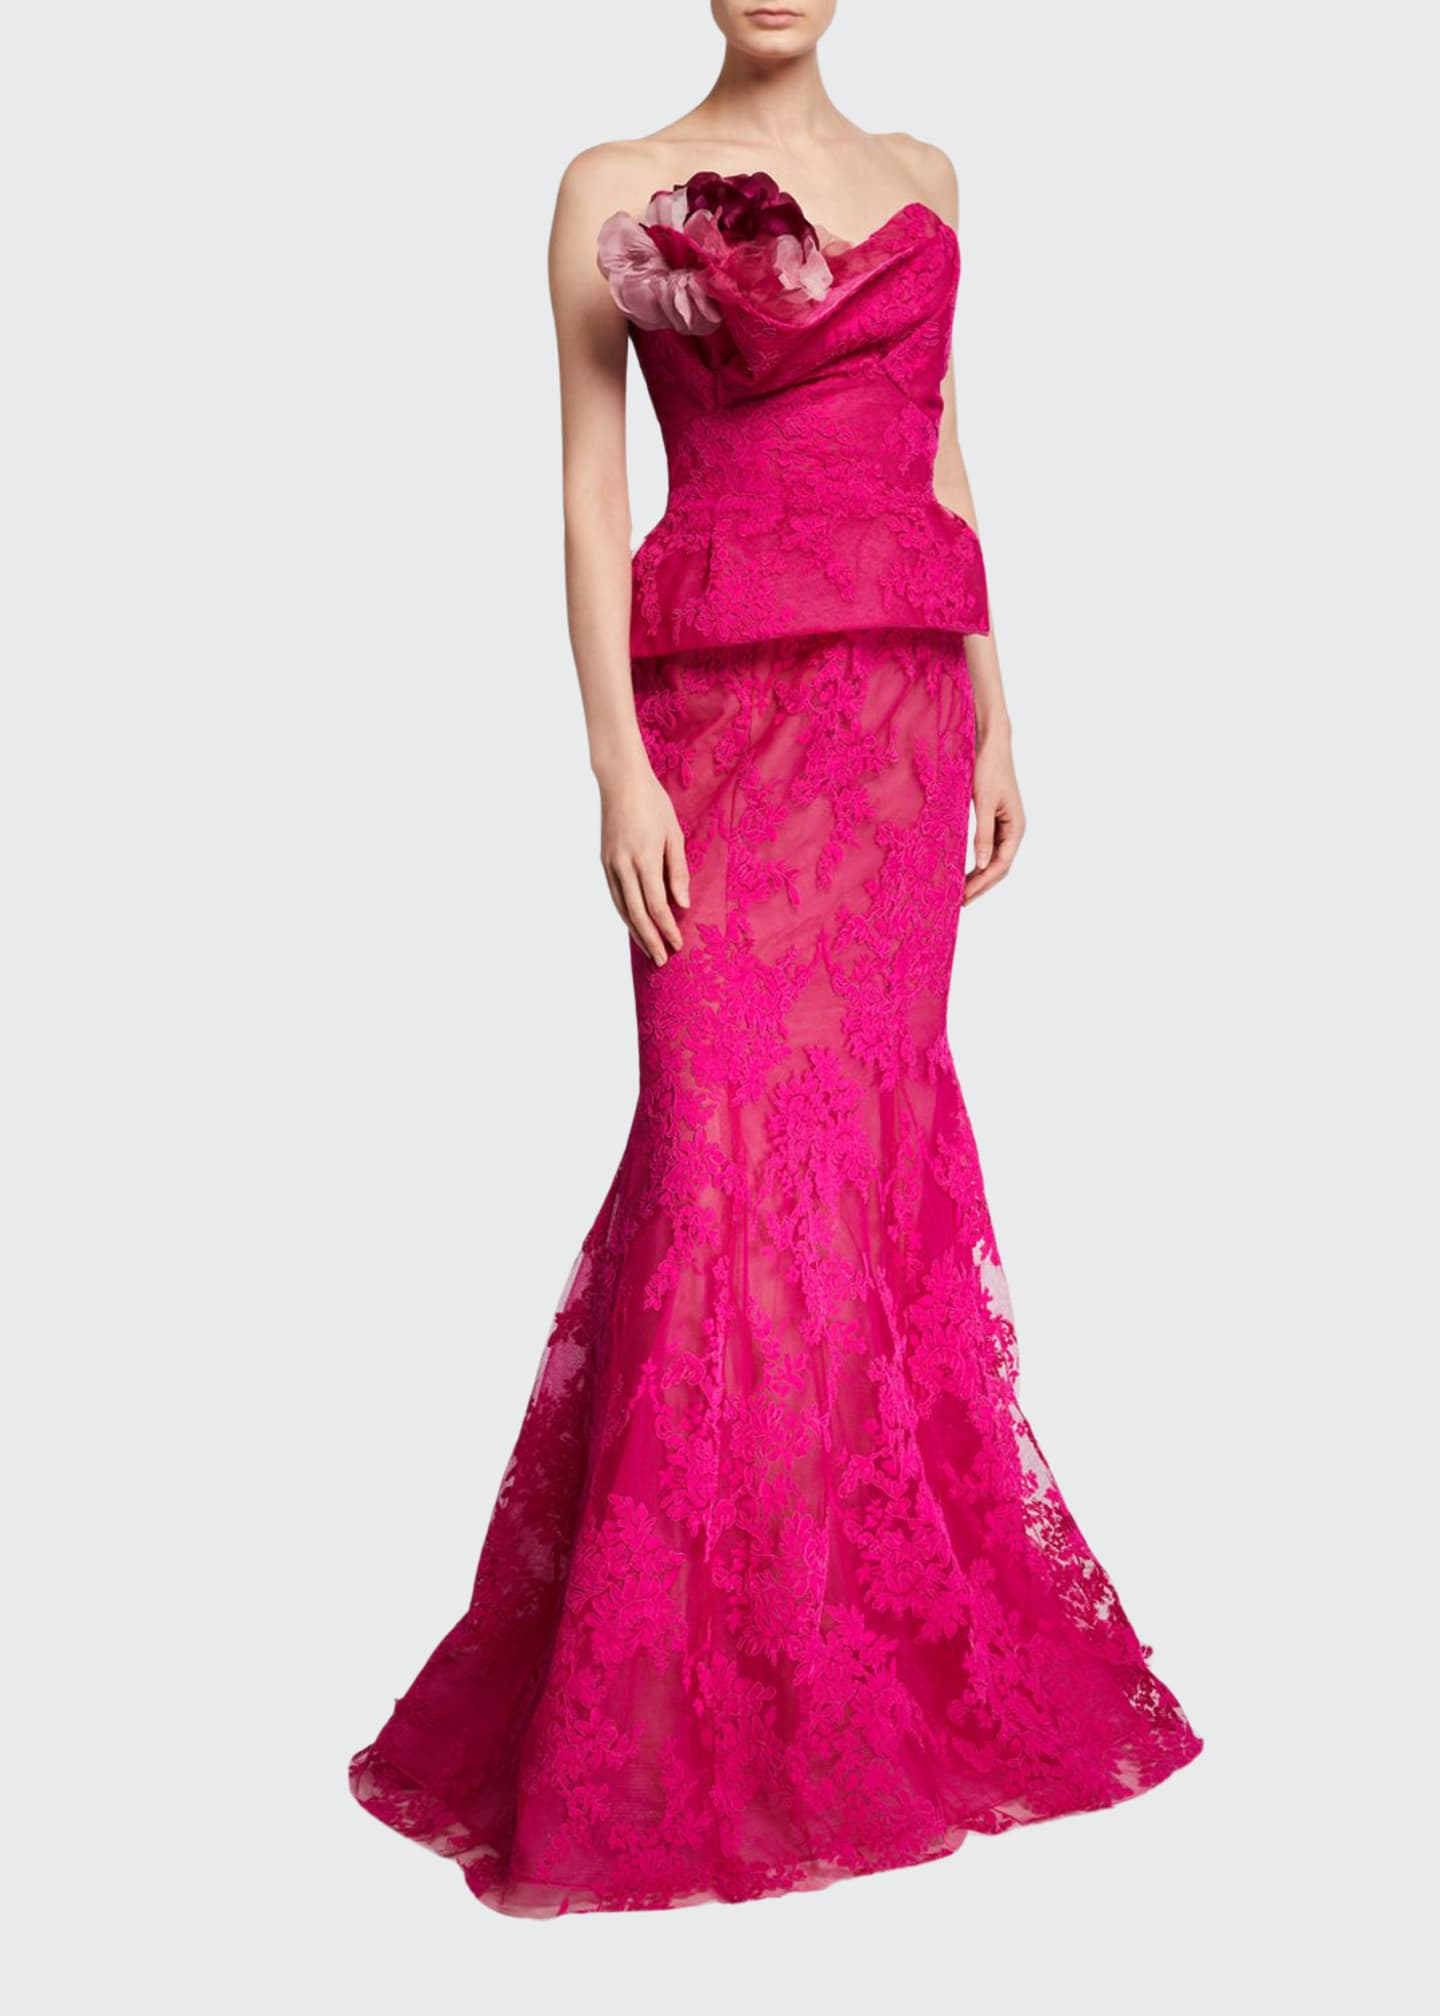 Marchesa Corded Lace Fit & Flare Gown